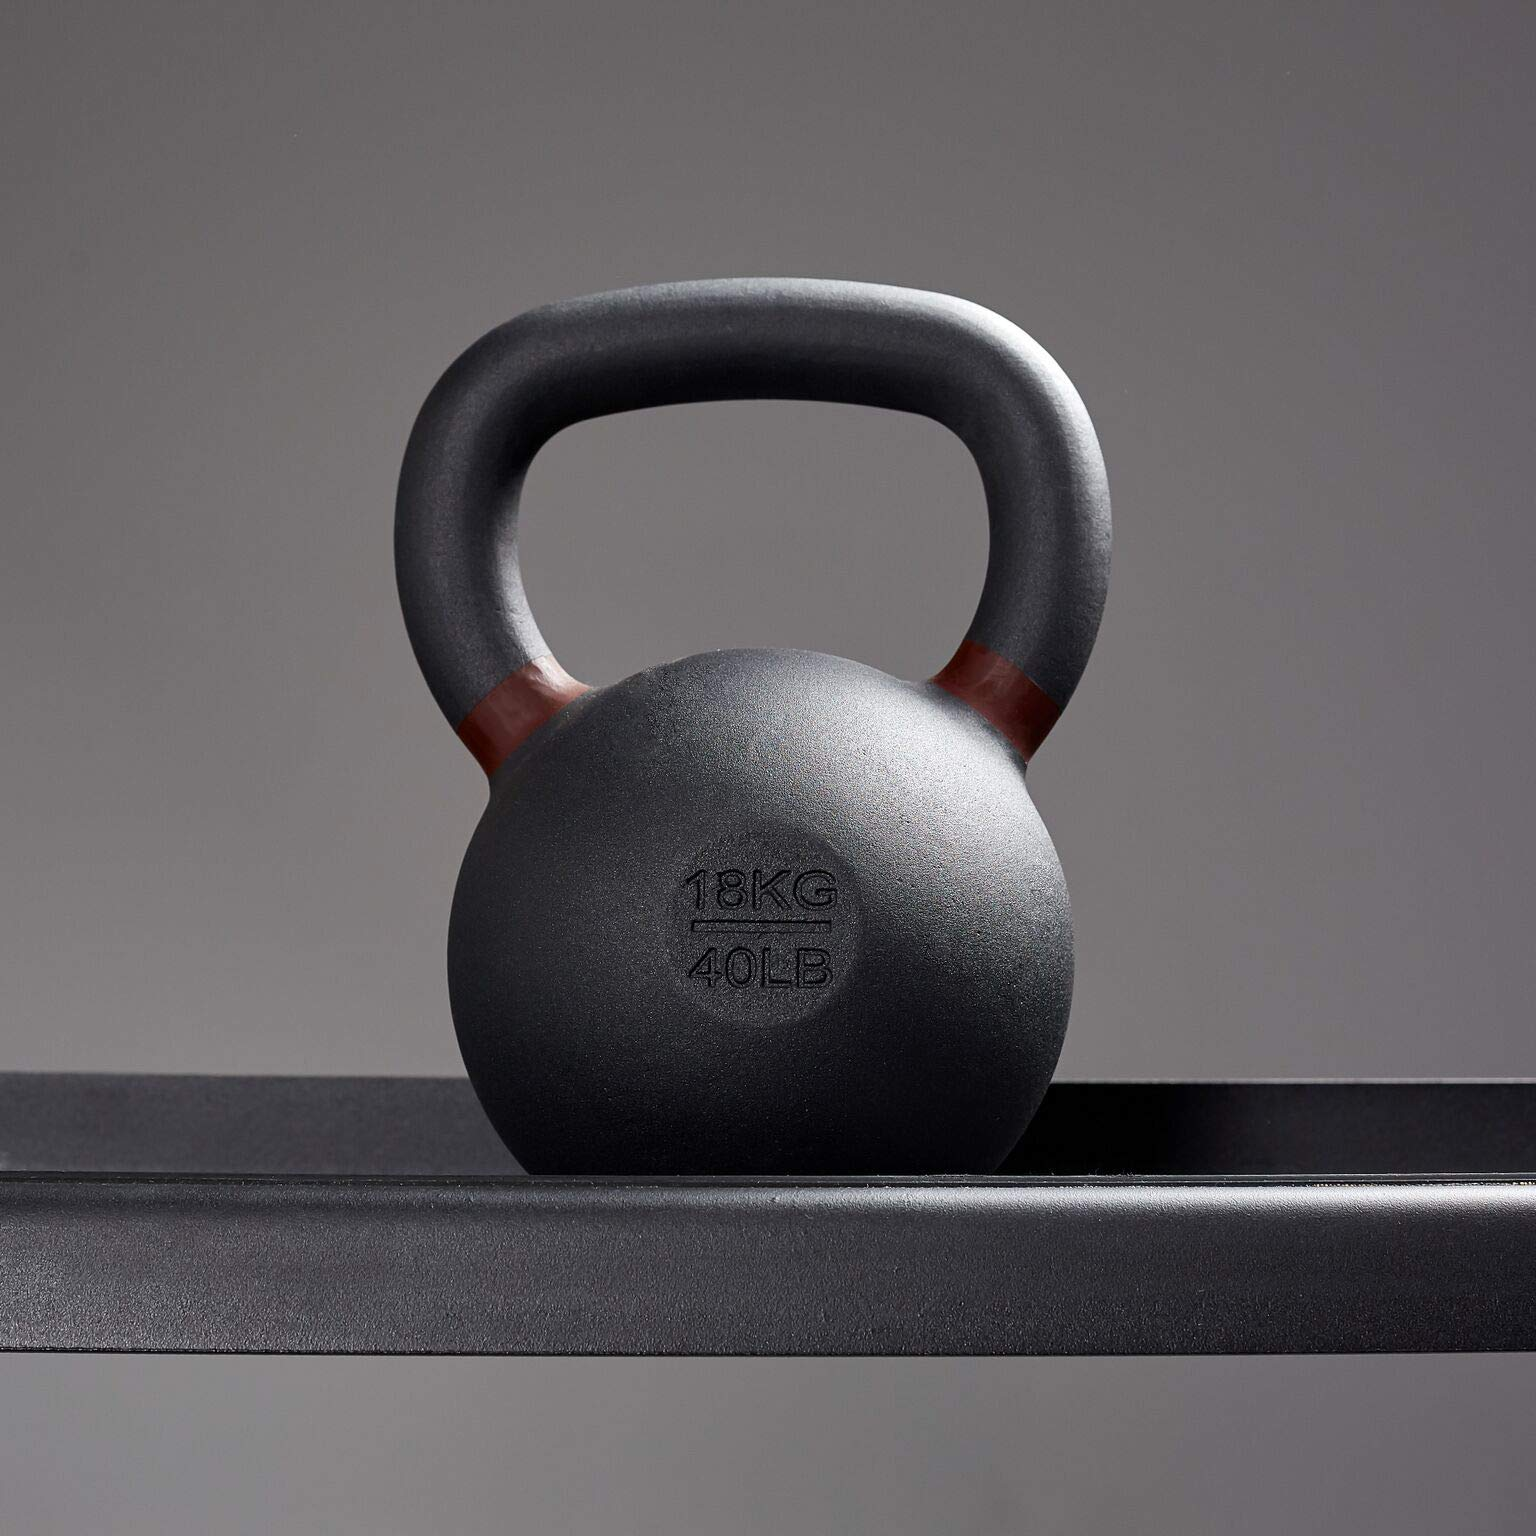 Rep 18 kg Kettlebell for Strength and Conditioning by Rep Fitness (Image #3)